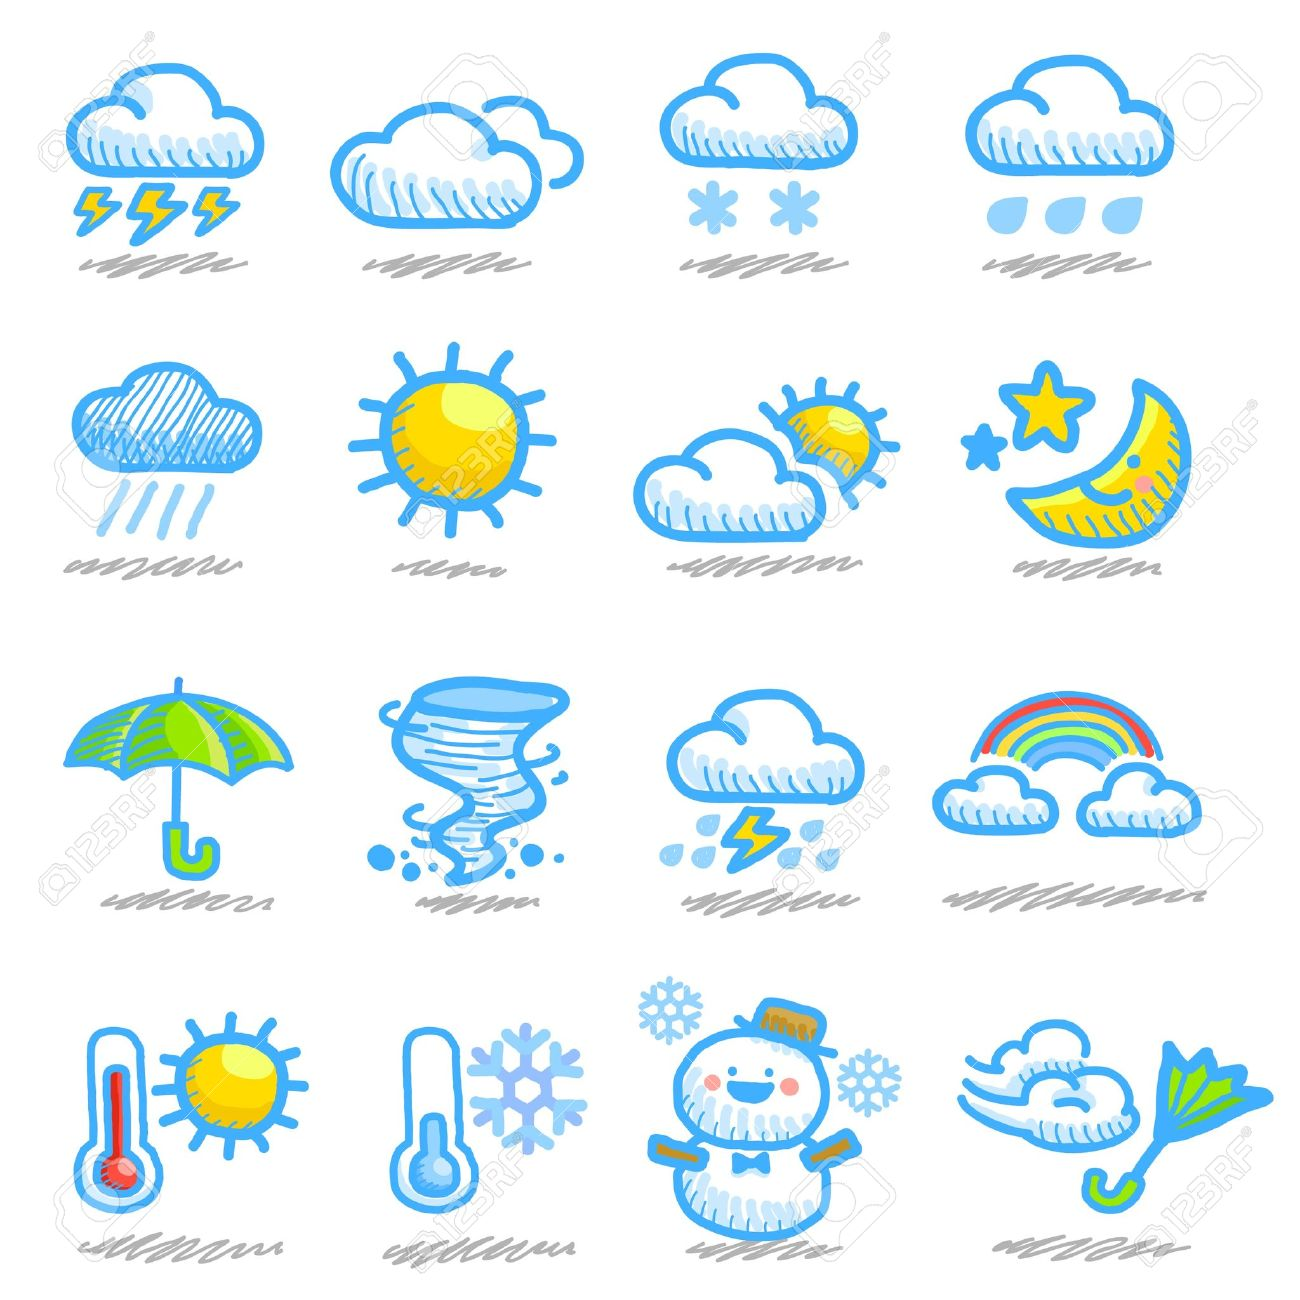 hand drawn weather icon set Stock Vector - 10556184